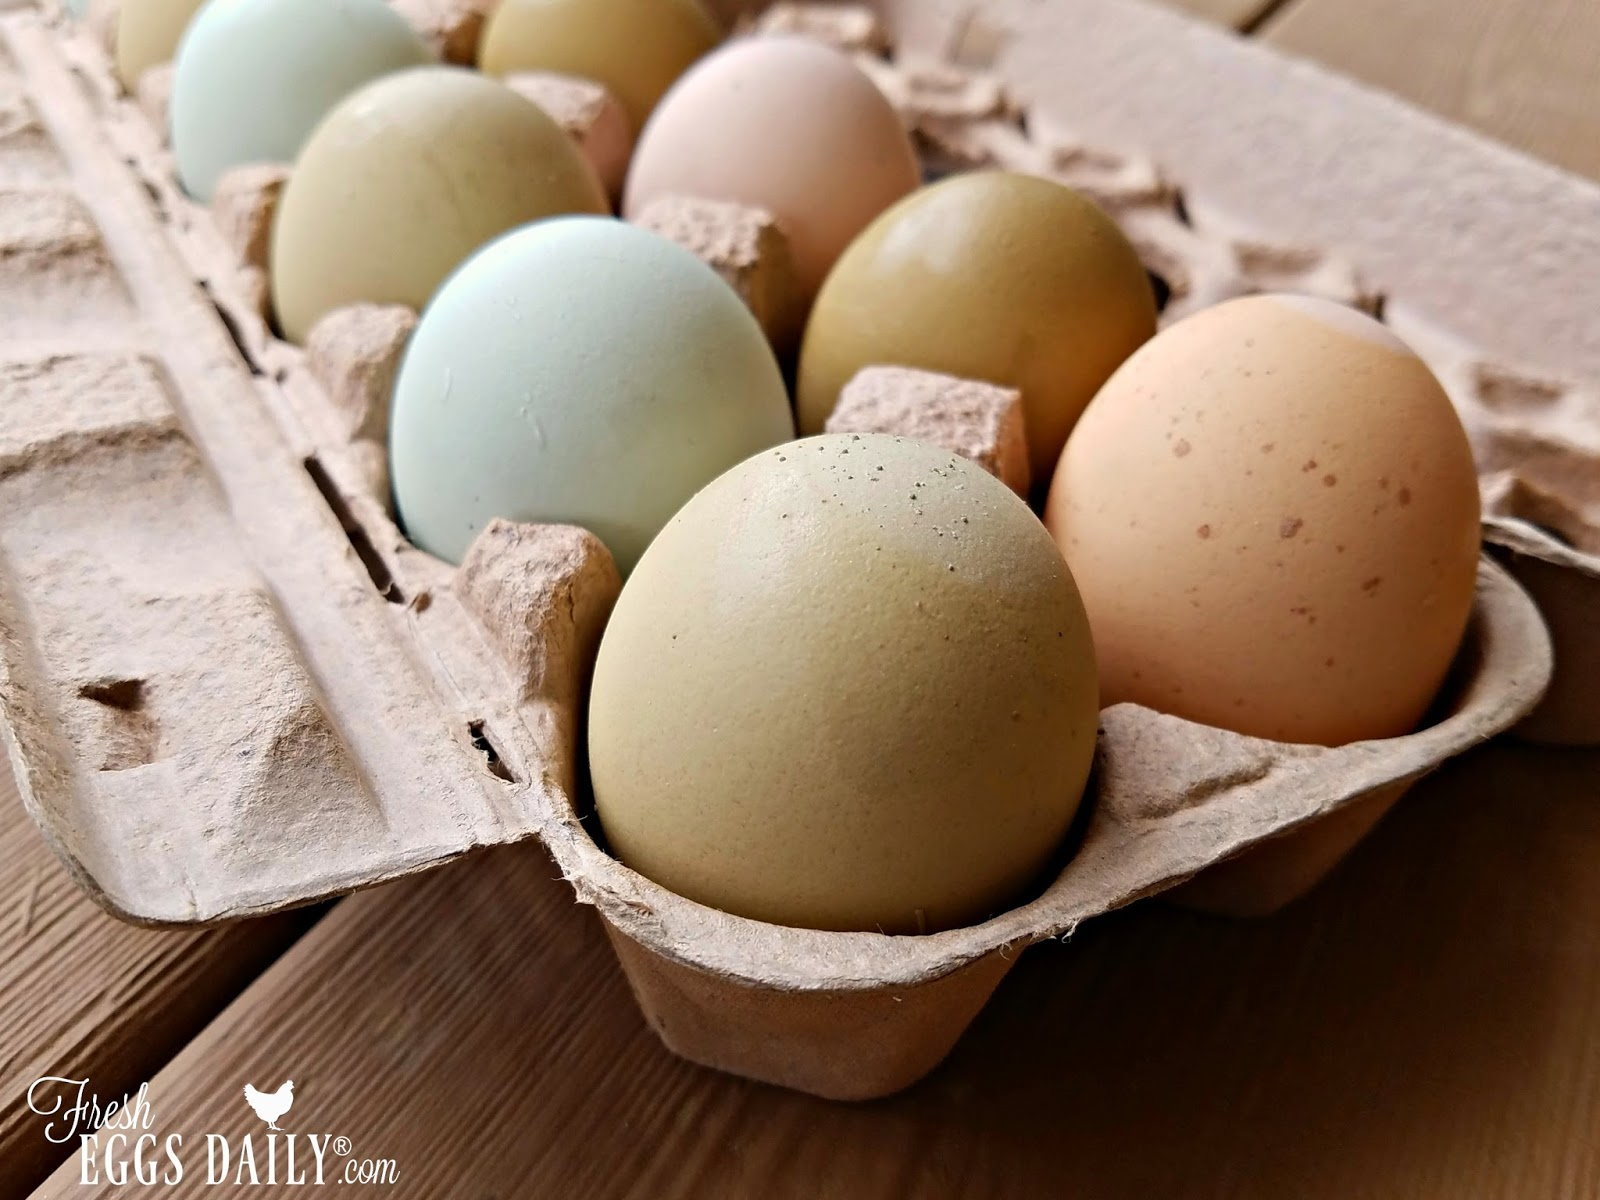 7 Tips to Help You Sell Your Farm Fresh Eggs For More ...1600 x 1200 jpeg 229 КБ